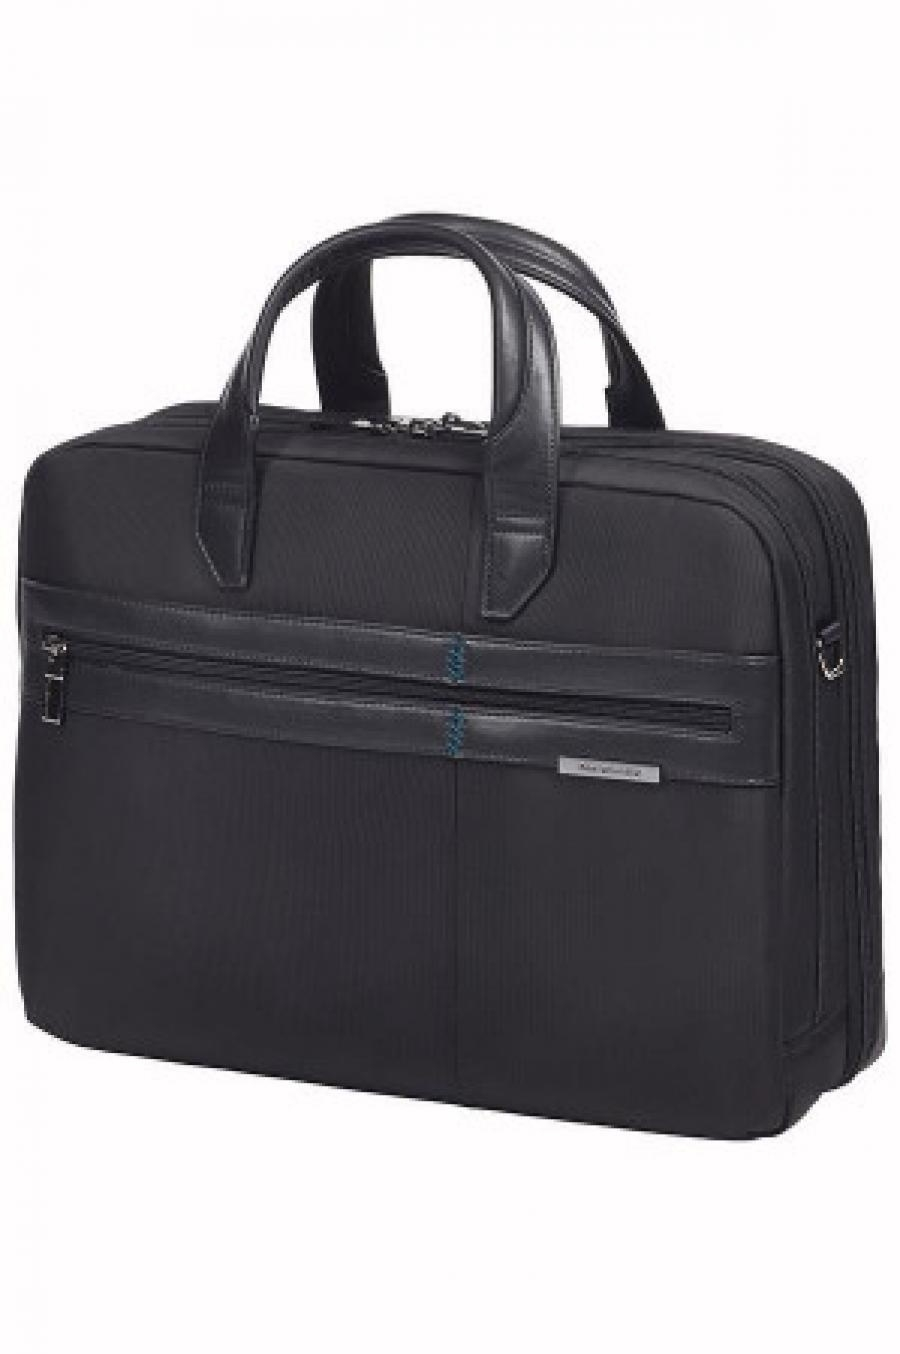 Case SAMSONITE 62N09005 15,6'' FORMALITE comp, pock, tblt, doc, black